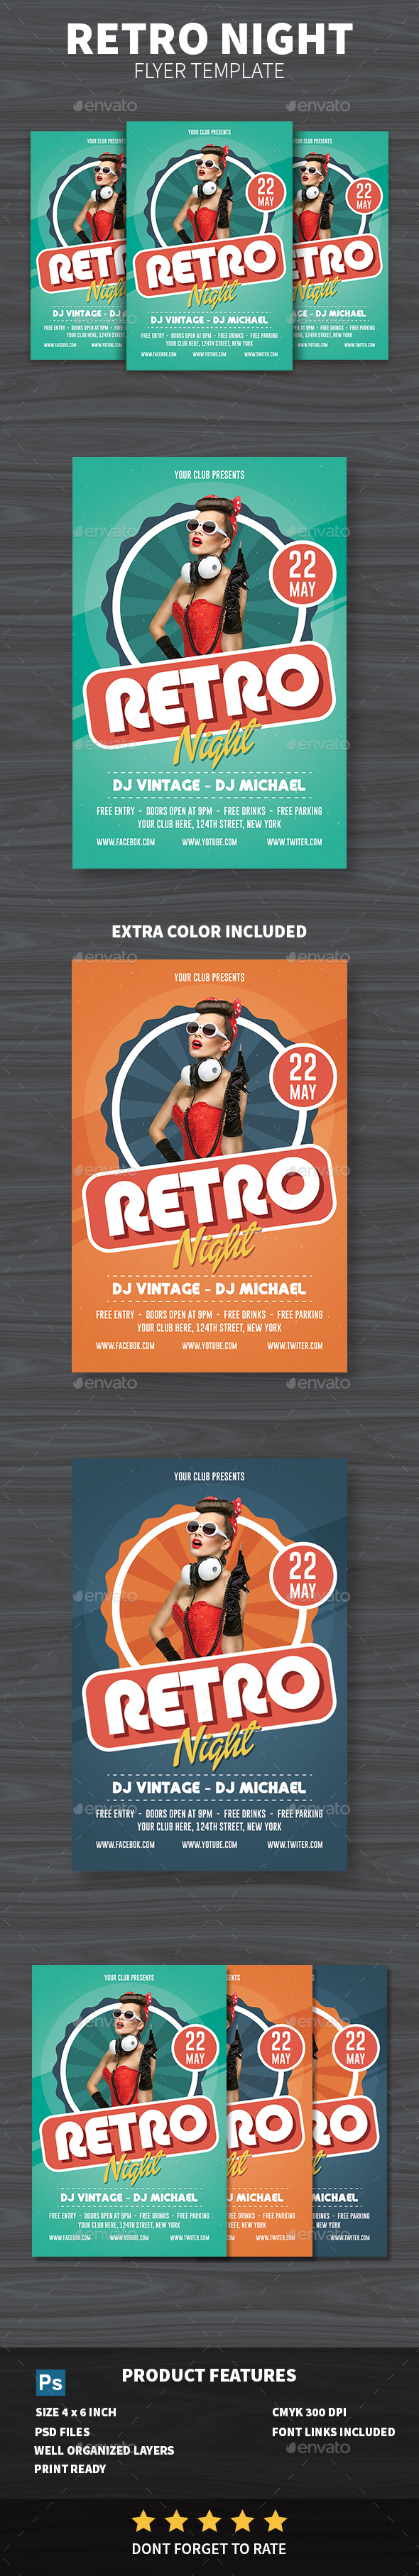 Retro Night Flyer